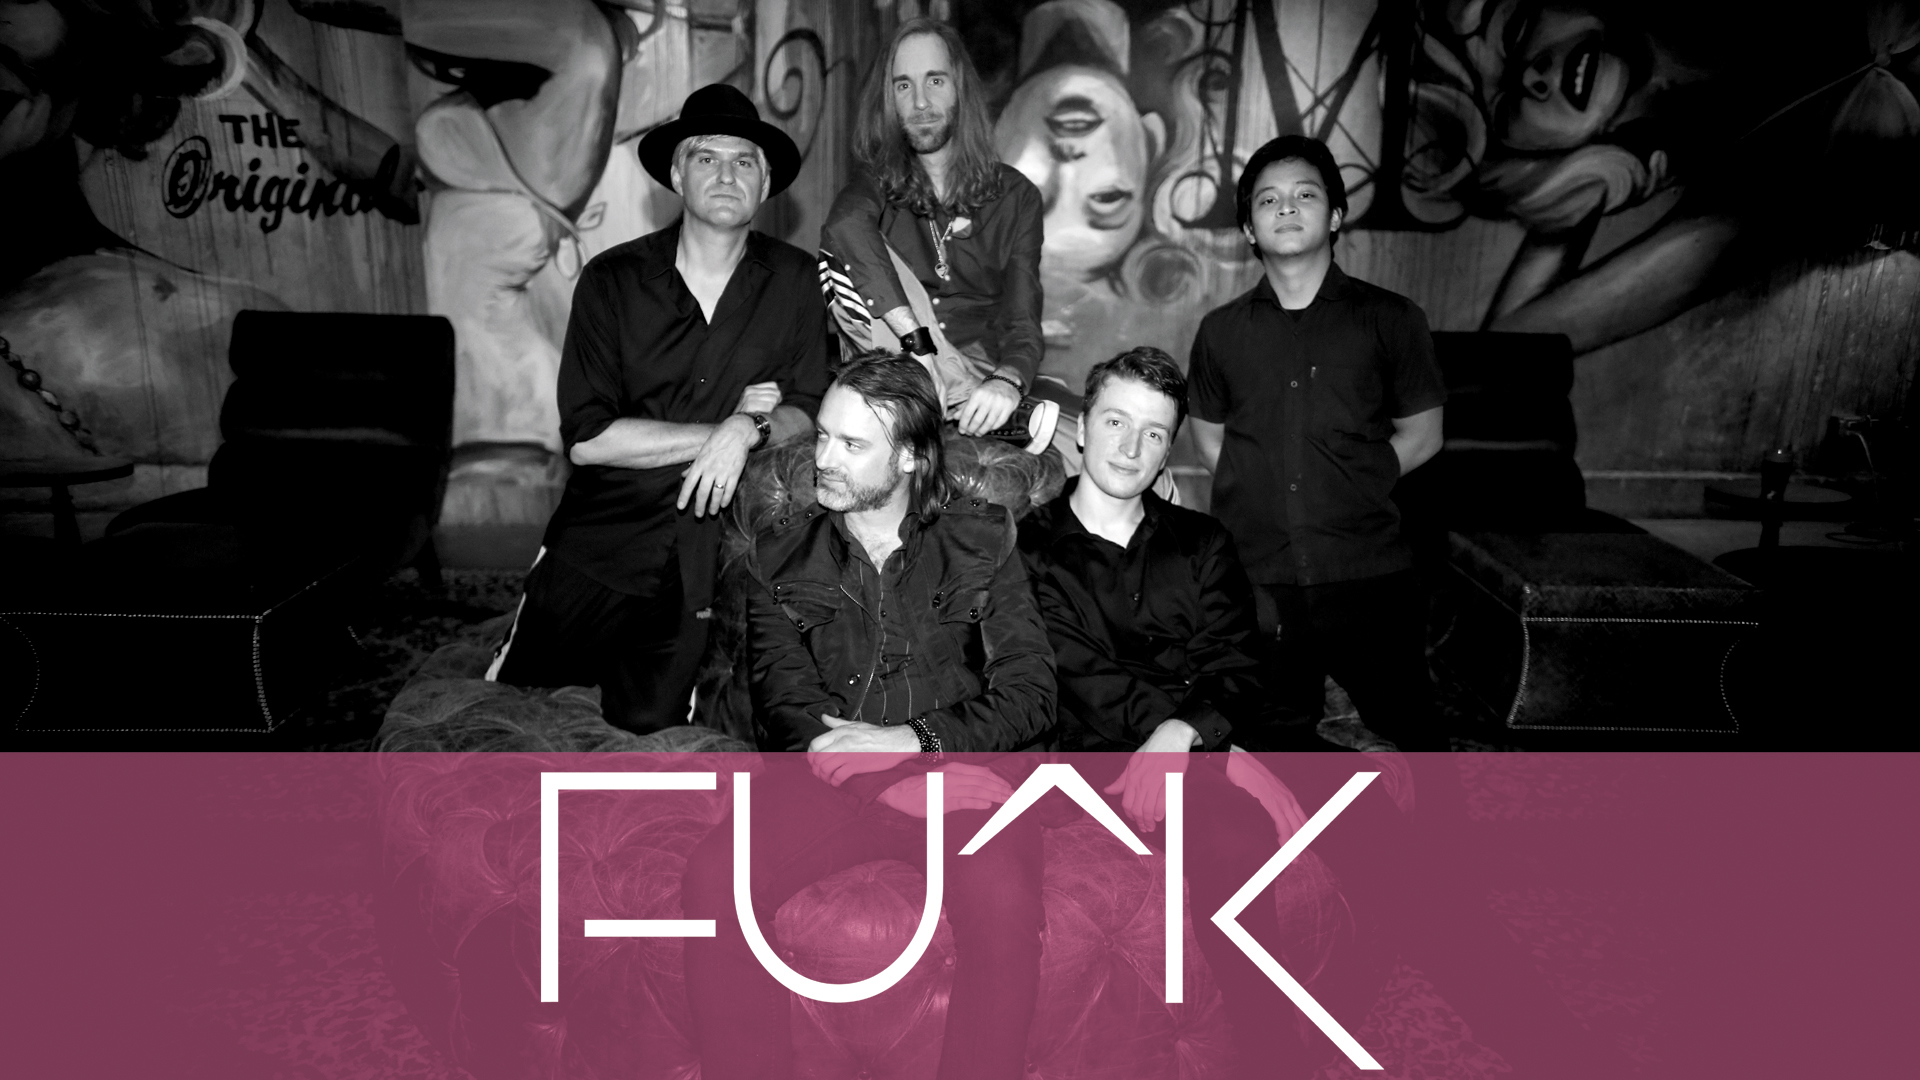 FU^K Press Shot by Melanie Escombe